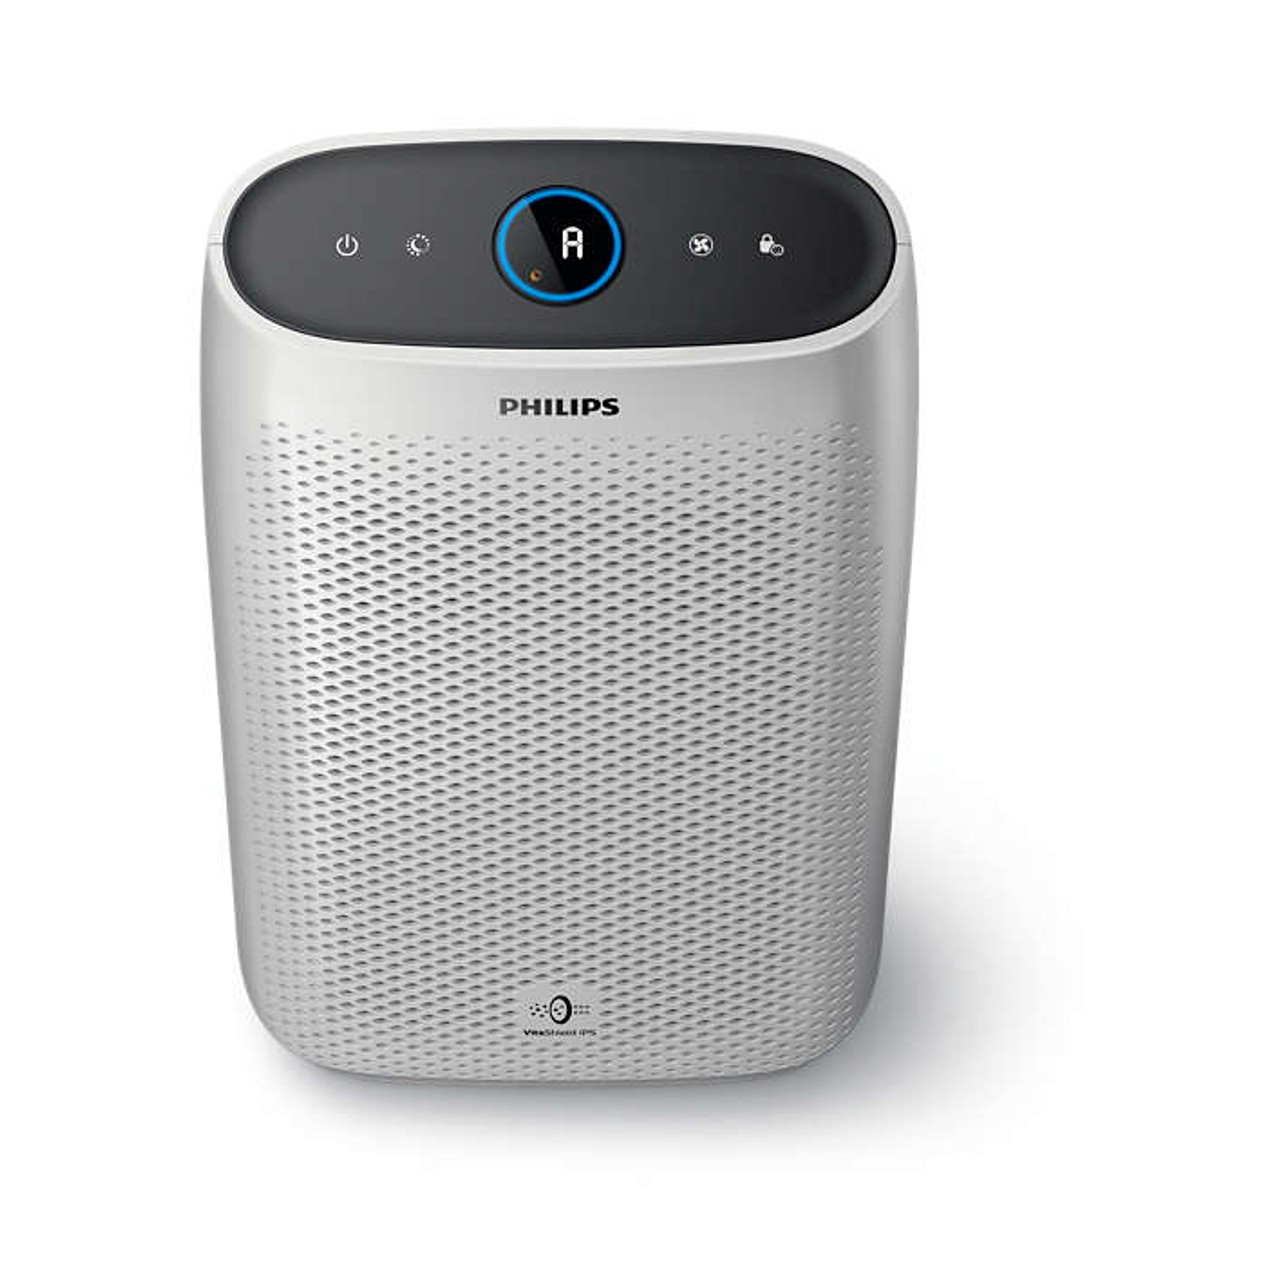 Philips AC1215/70 Series 1000 Air Purifier With VitaShield IPS Tech - RRP $329.00 - HURRY LAST 4!